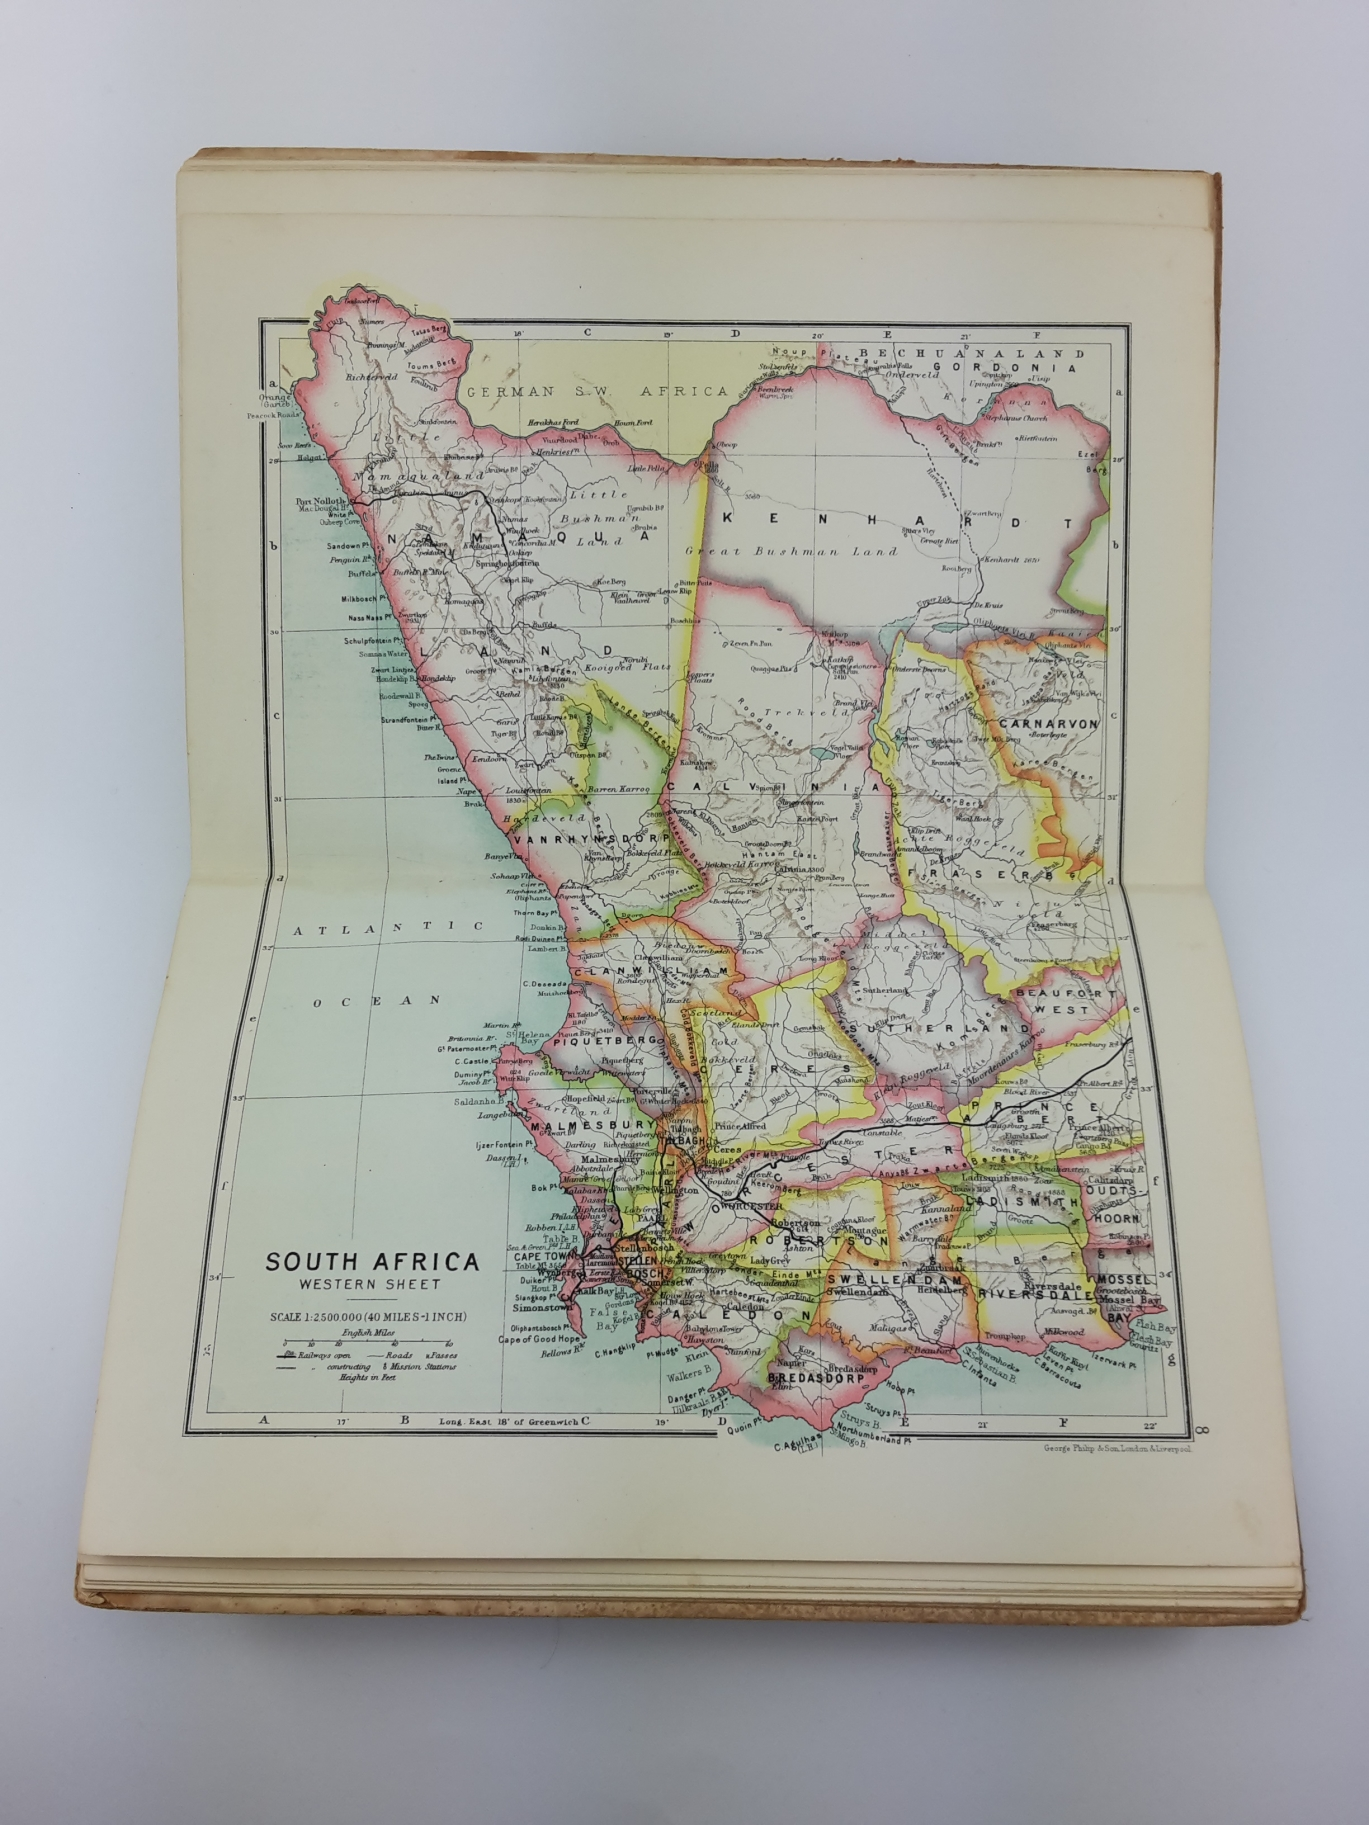 South Africa, Castle Line: The Castle Line Atlas of South Africa A series of 16 plates, printed in colour, containing 30 maps and diagrams. With an account of the geographical features, the climate, the mineral and other resources, and the history of Sout